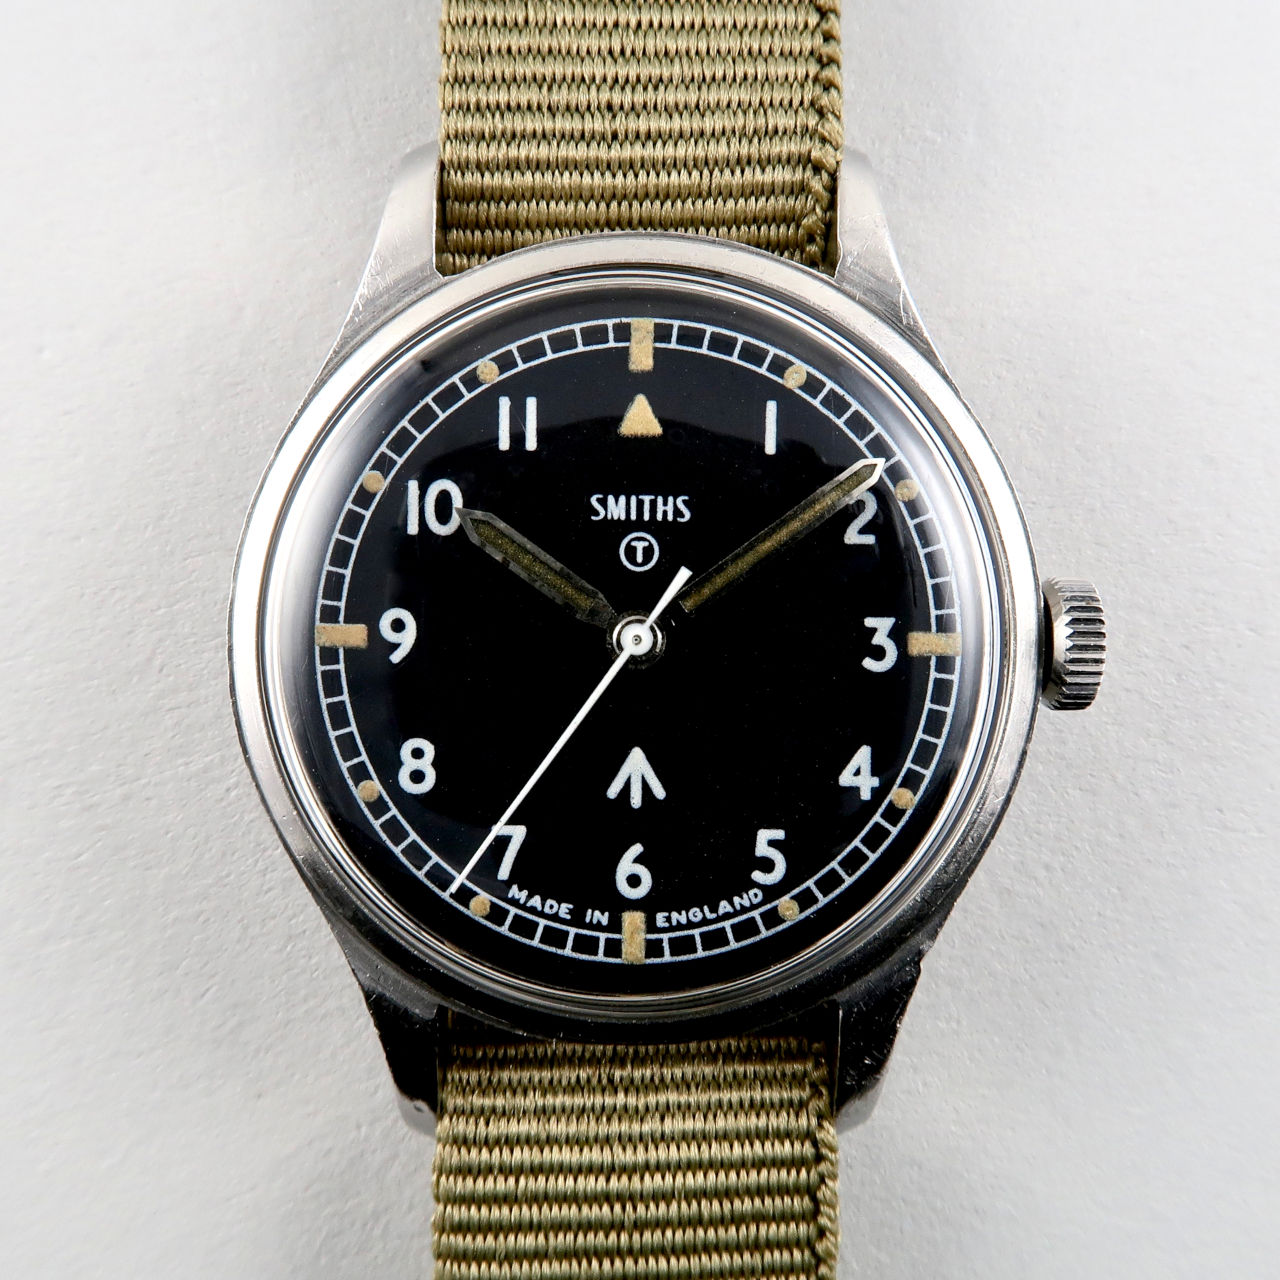 Smiths W10 military dated 1968 | steel manual vintage wristwatch with hack feature